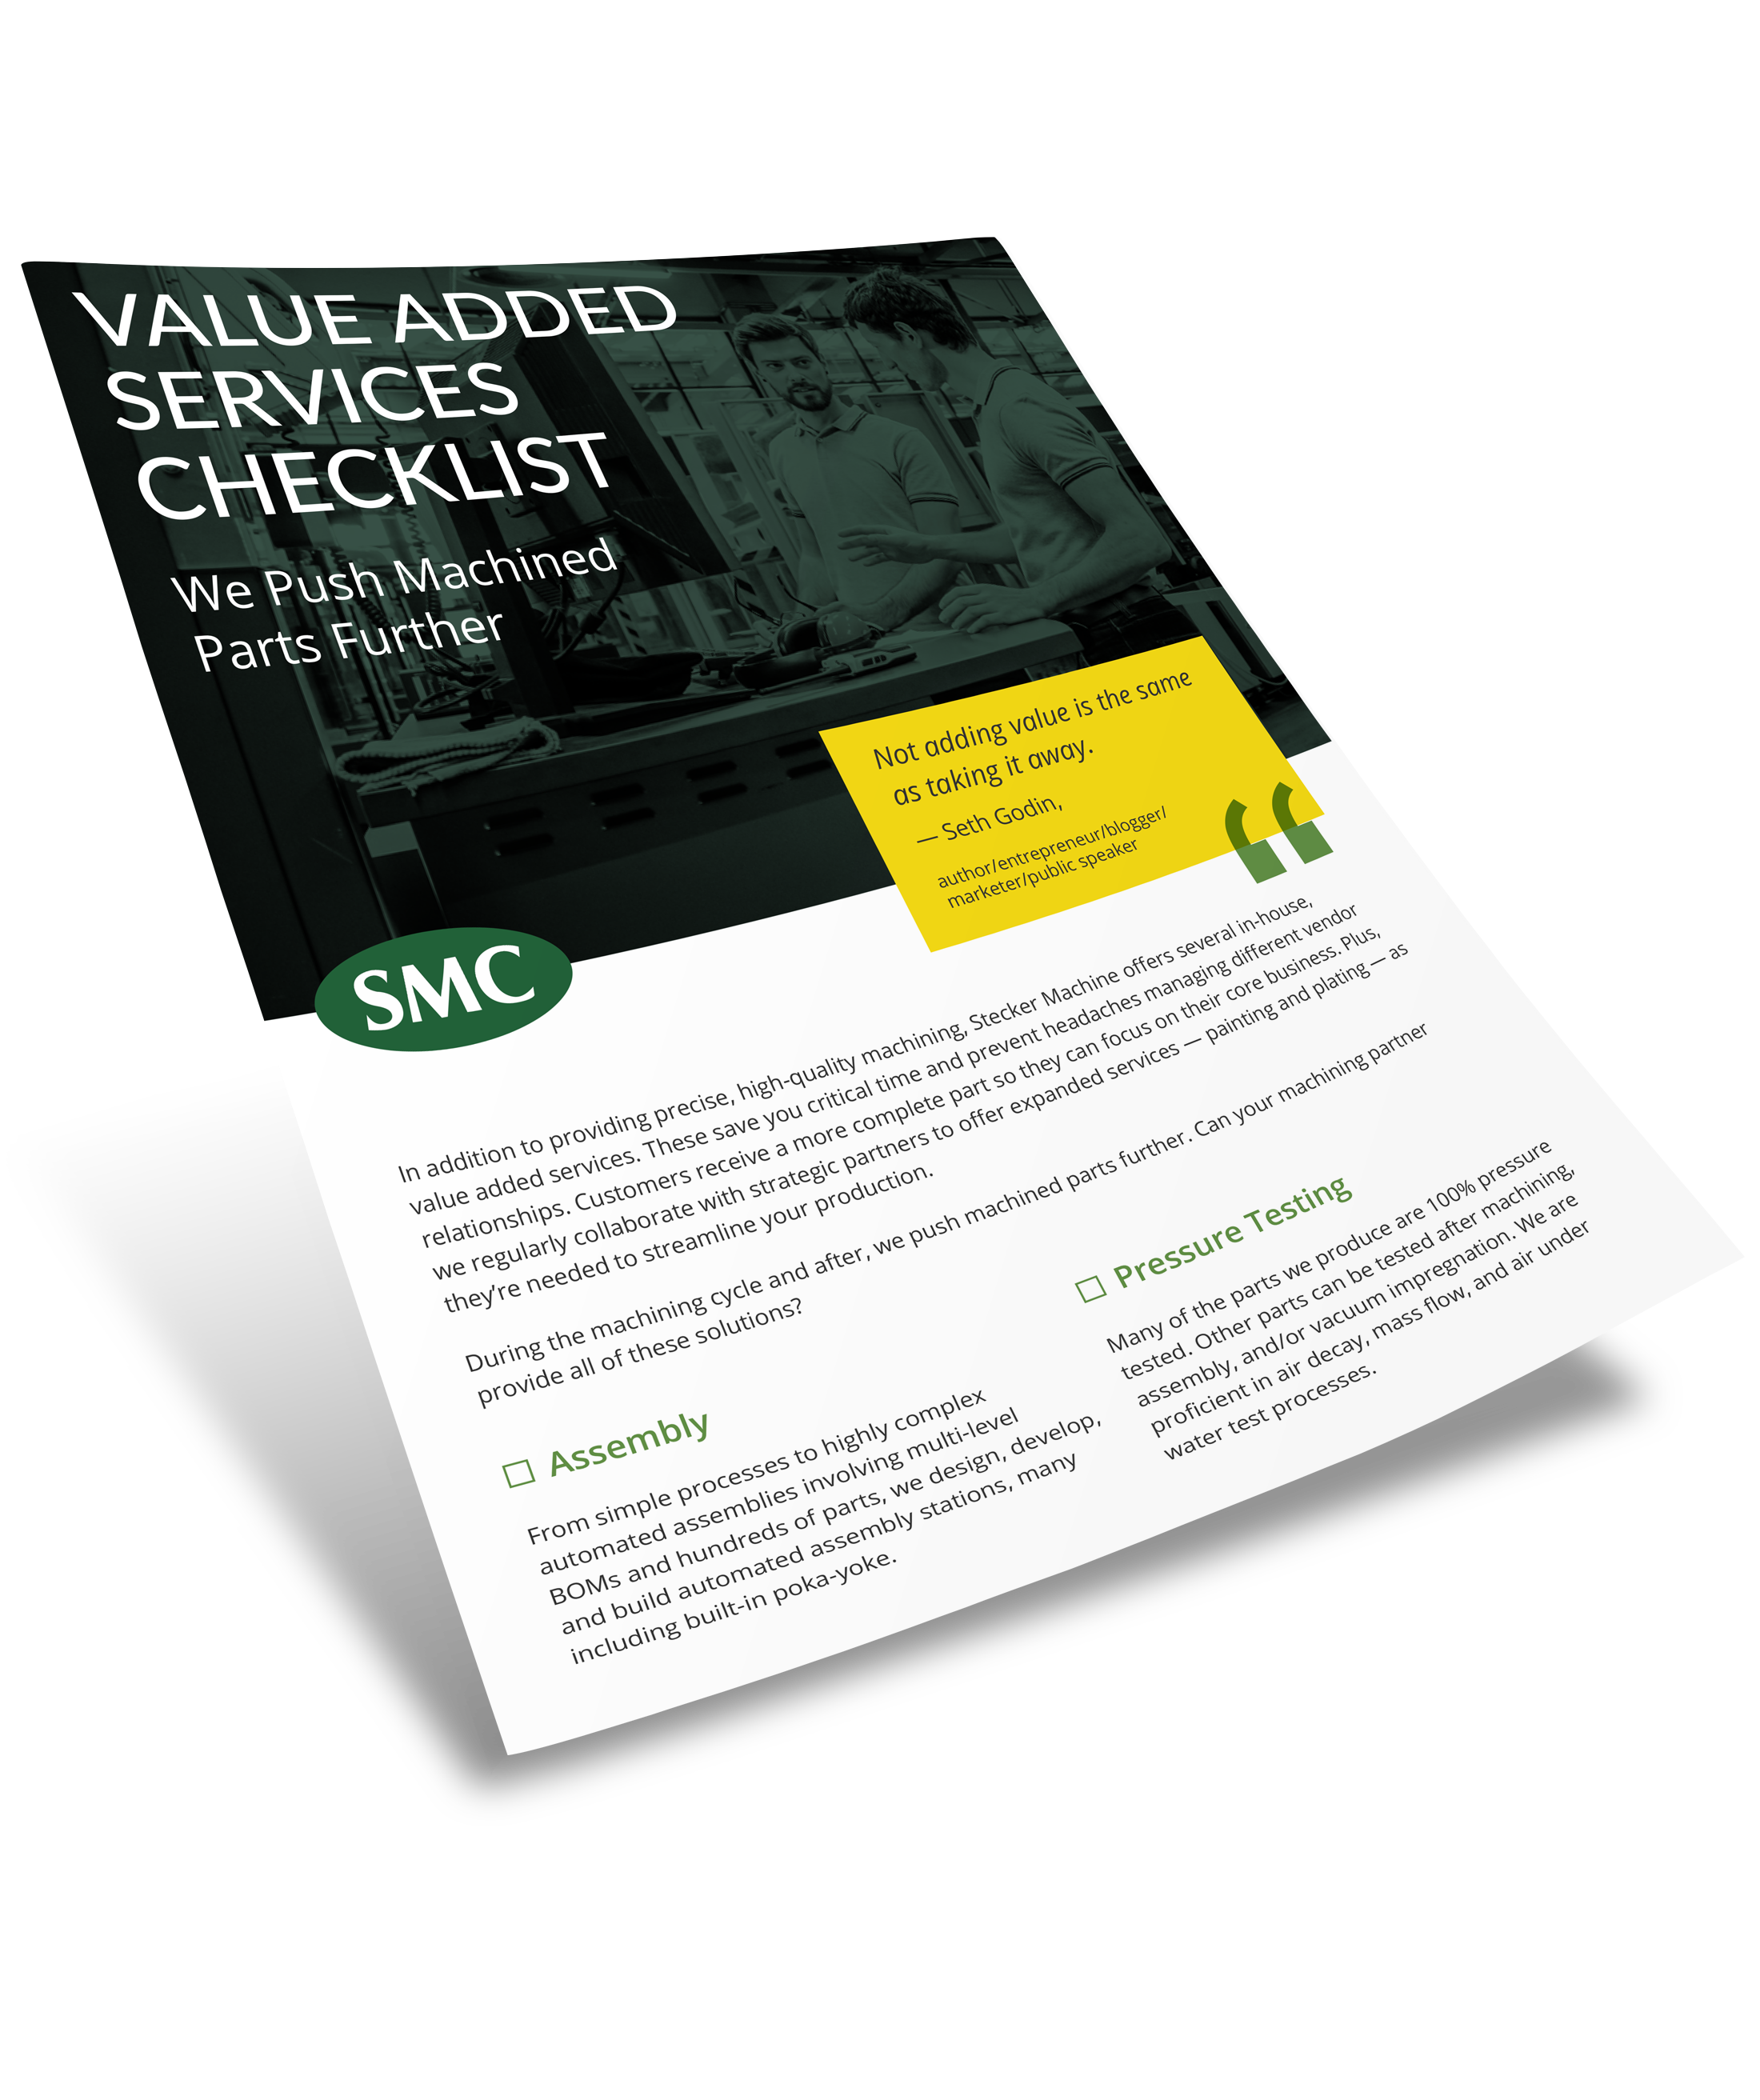 Value_Added_Services_Checklist_LP-Image